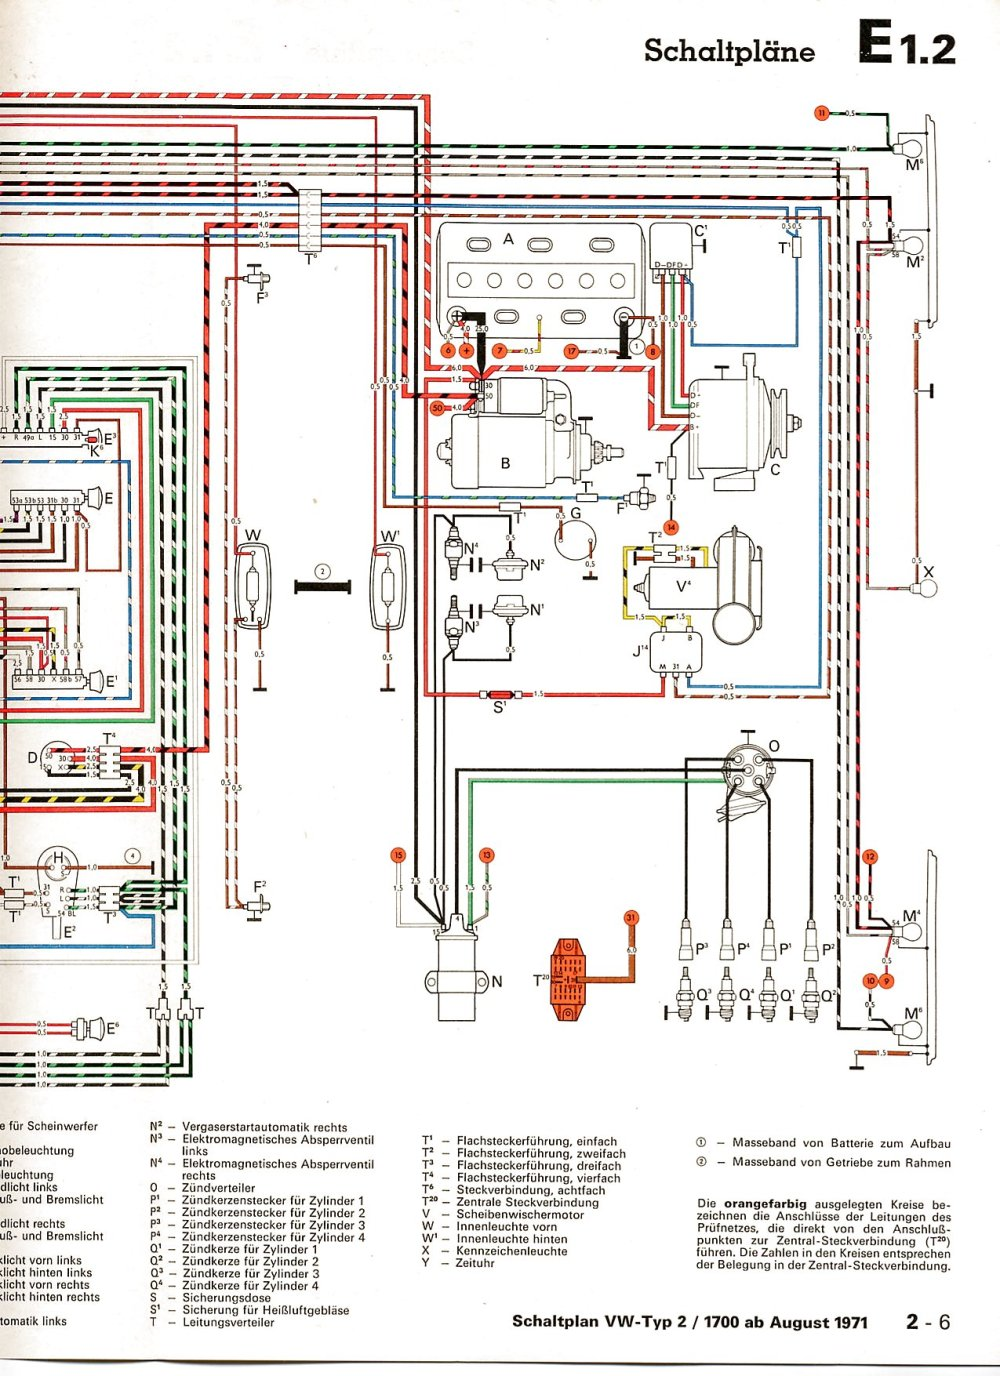 medium resolution of vw t2 wiring diagram 1973 schematic diagrams rh 11 fitness mit trampolin de 2 0 vw type 2 engine diagram vw type 4 engine diagram